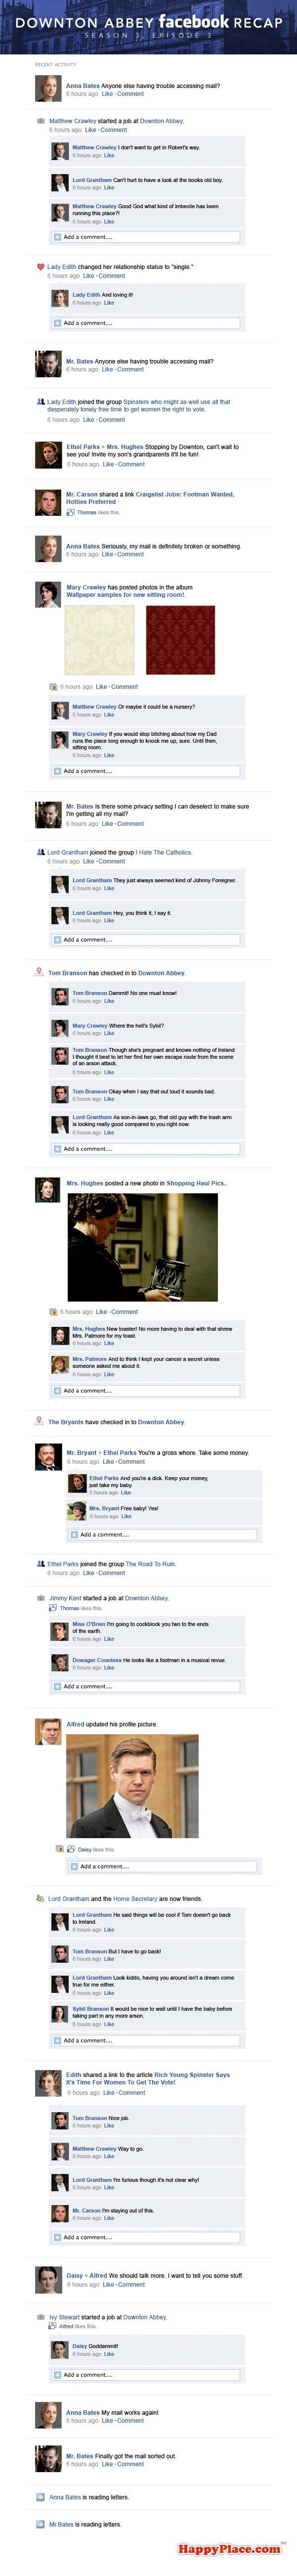 Downton Abbey Facebook Recap Season 3 Episode 3   If downton abby was played out on FB. too funny! {don't read unless you have already watched episode 3}